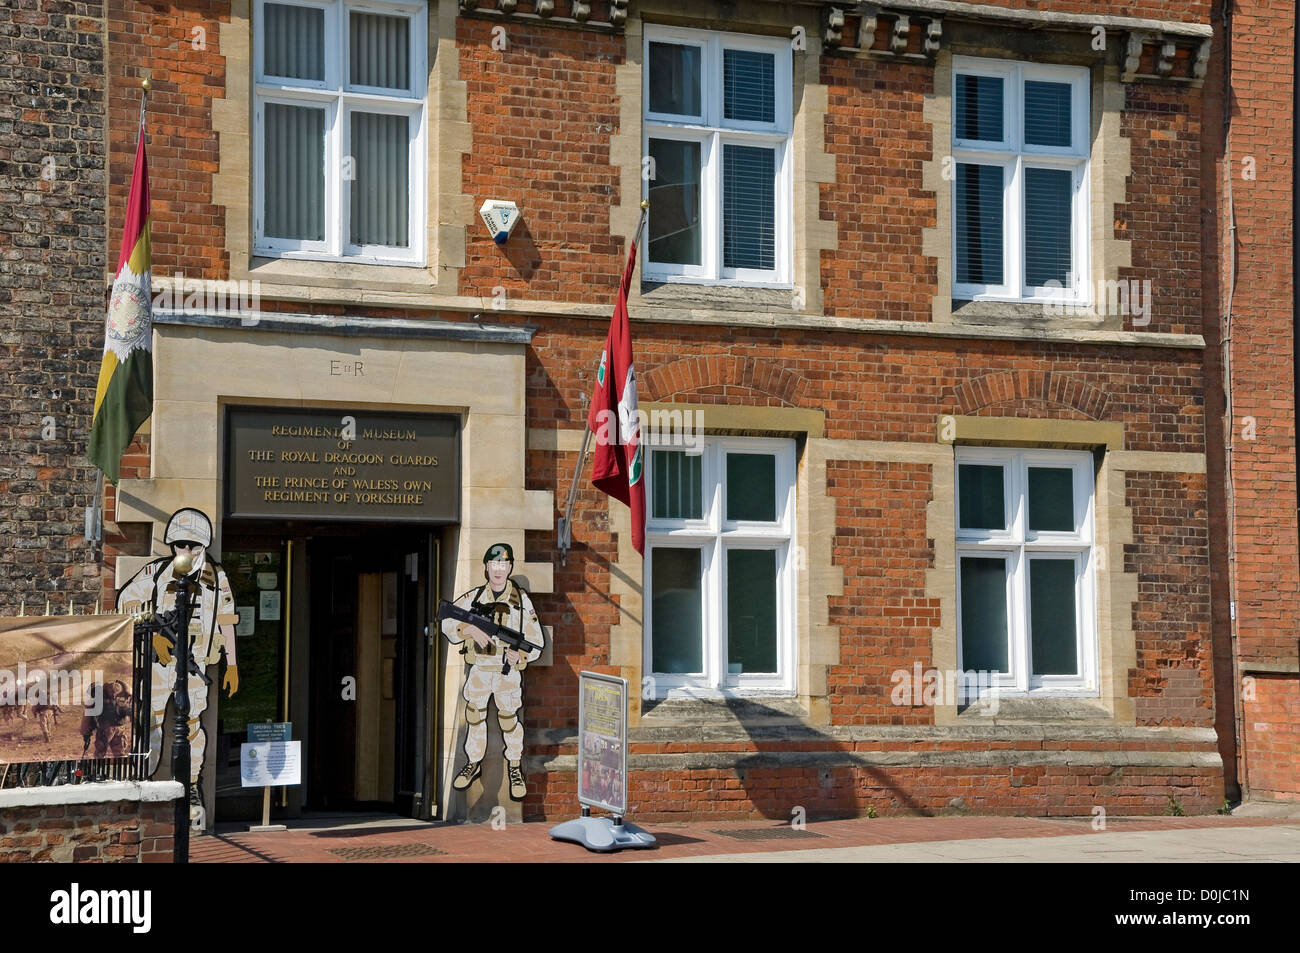 Frontage of the York Army Museum in Tower Street. - Stock Image